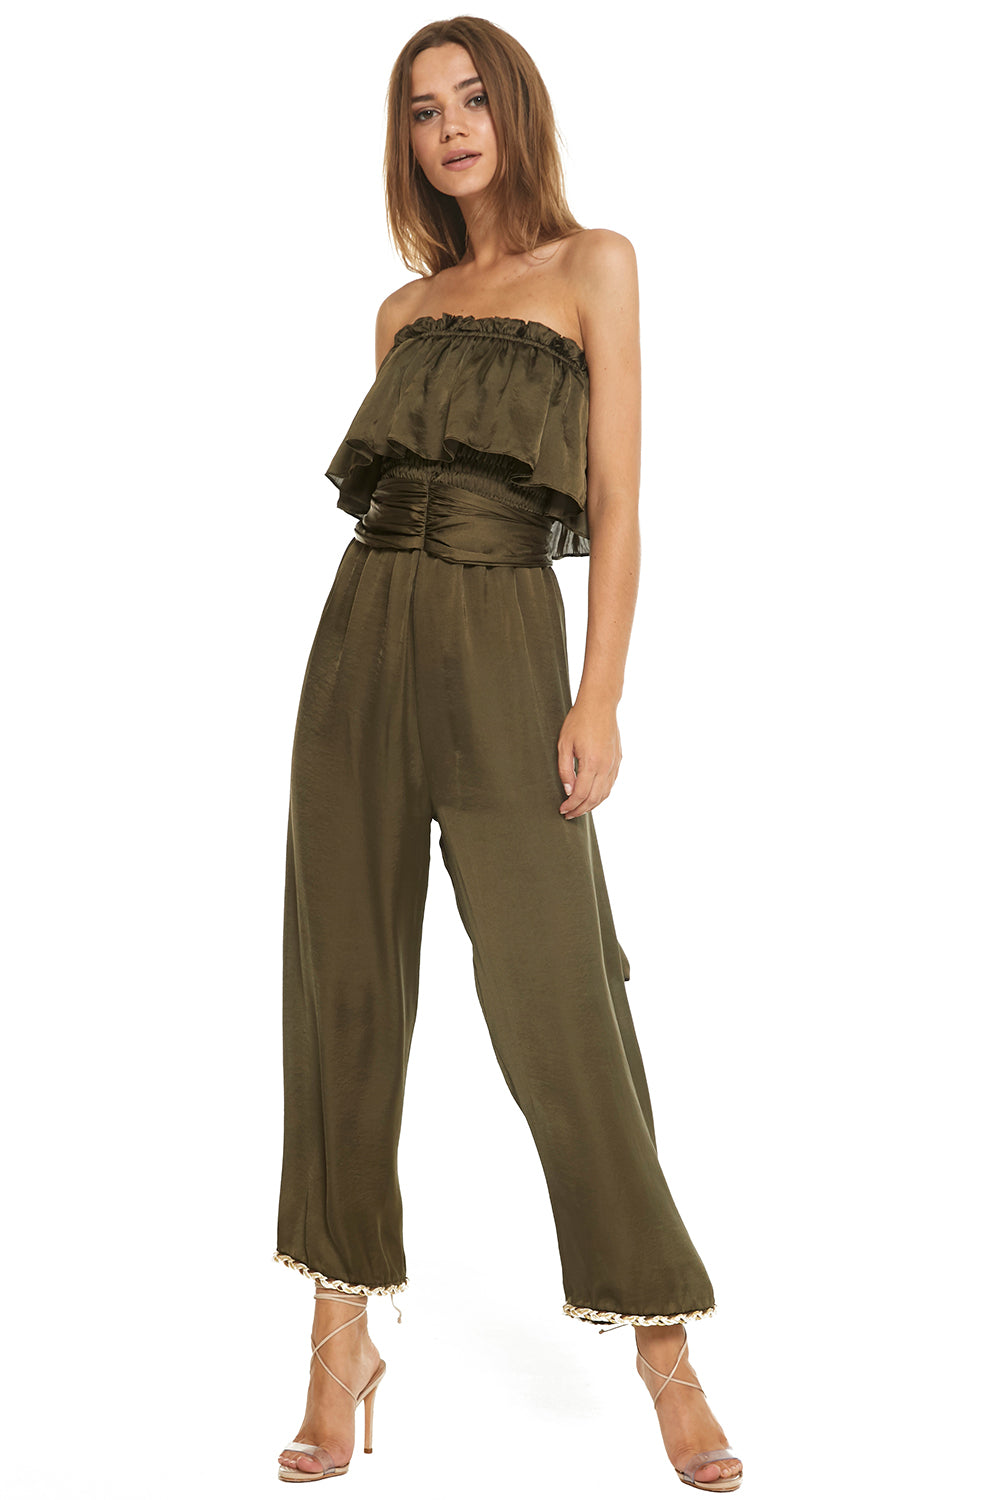 DIANDRA JUMPSUIT - MISA Los Angeles